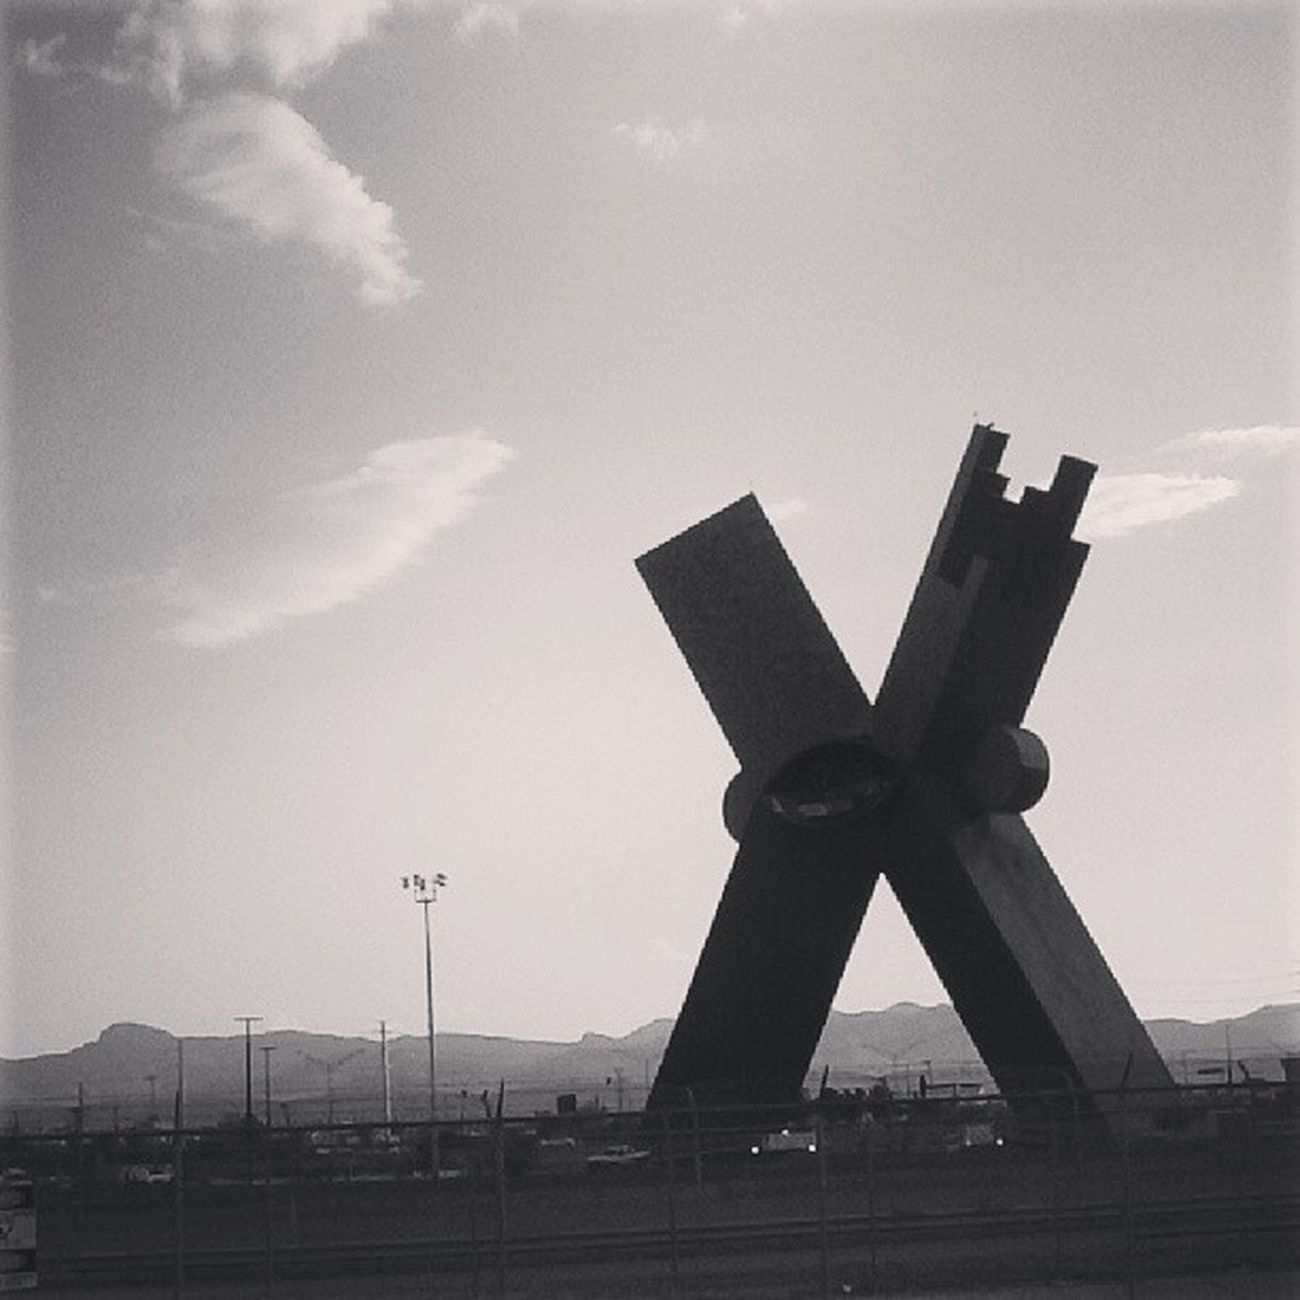 Cdjuarez X Icon Borderland metropolis sculpture architecture monument neighbor